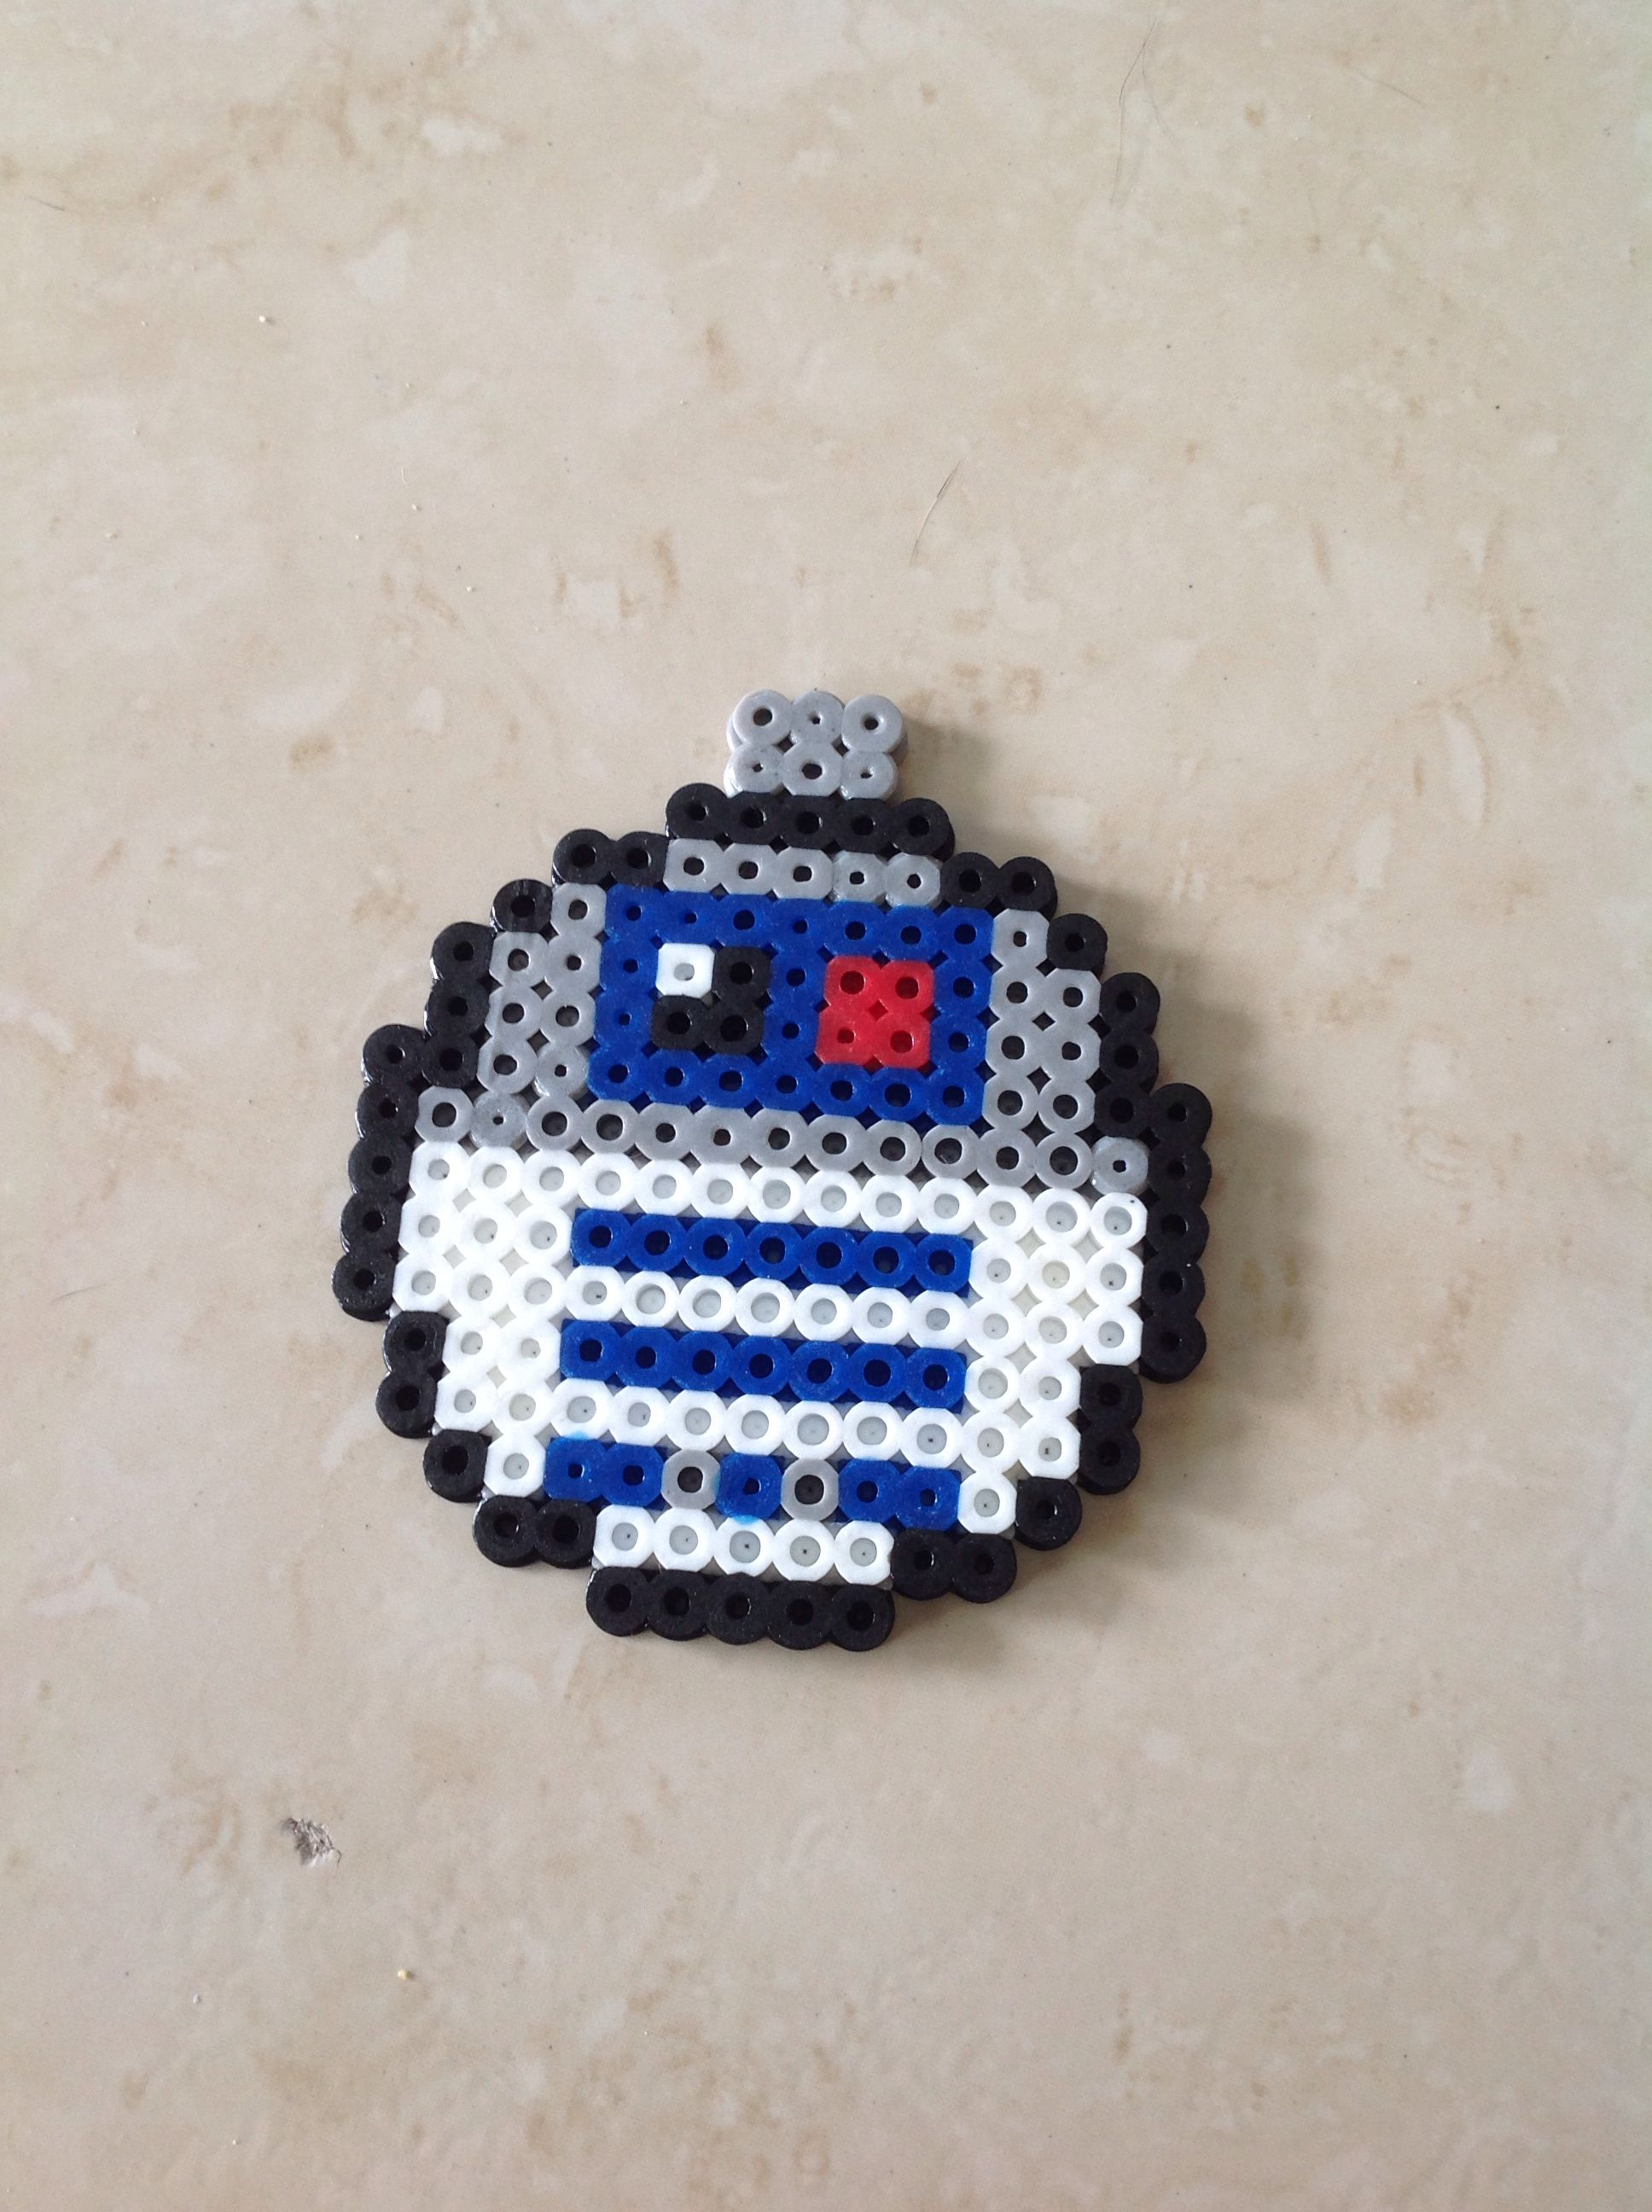 R2D2 Star Wars Christmas ornament perler beads by Heather Bergstedt ...